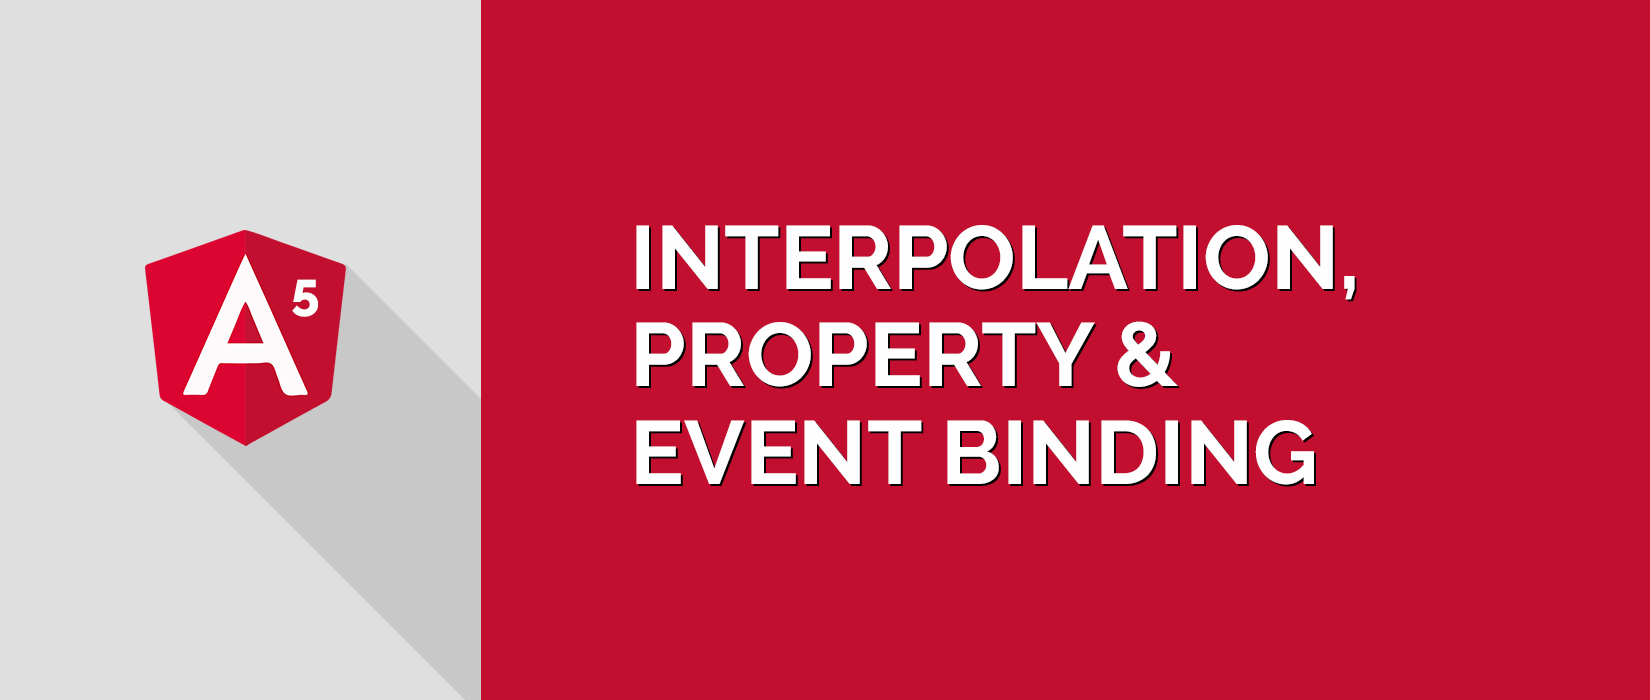 Angular 5 Interpolation, Property Binding & Event Binding